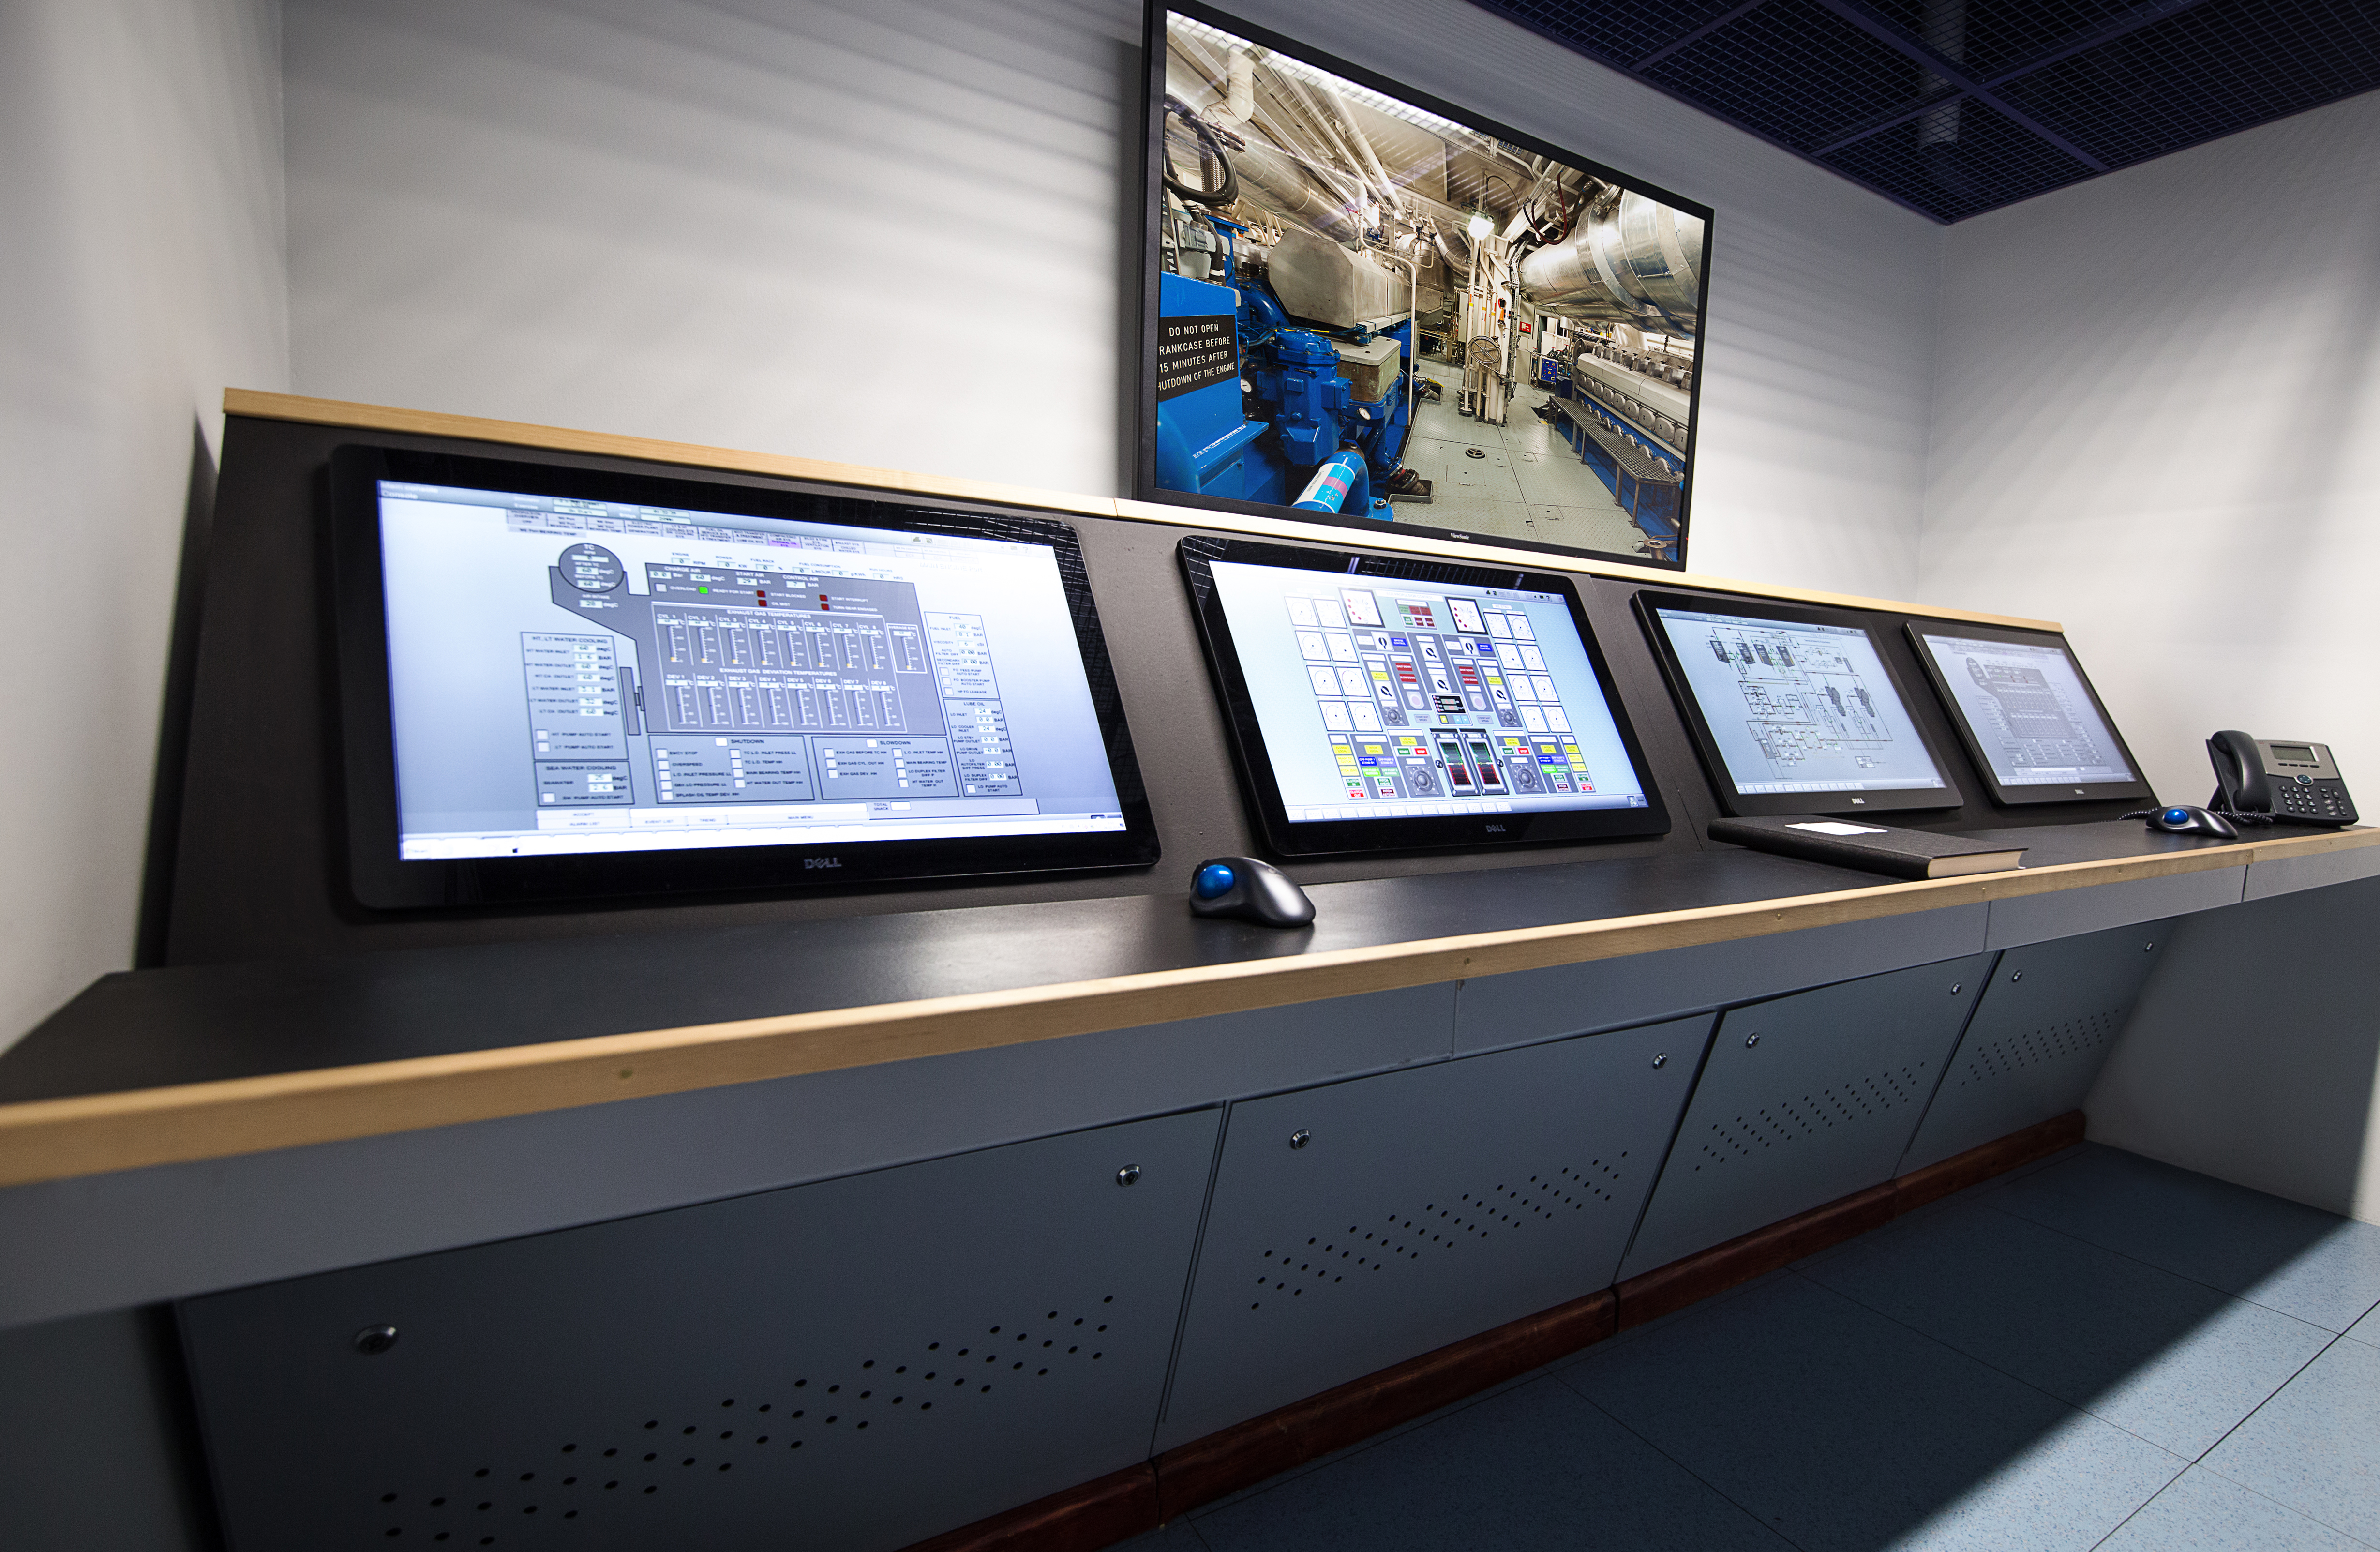 Engine Control Room Simulator